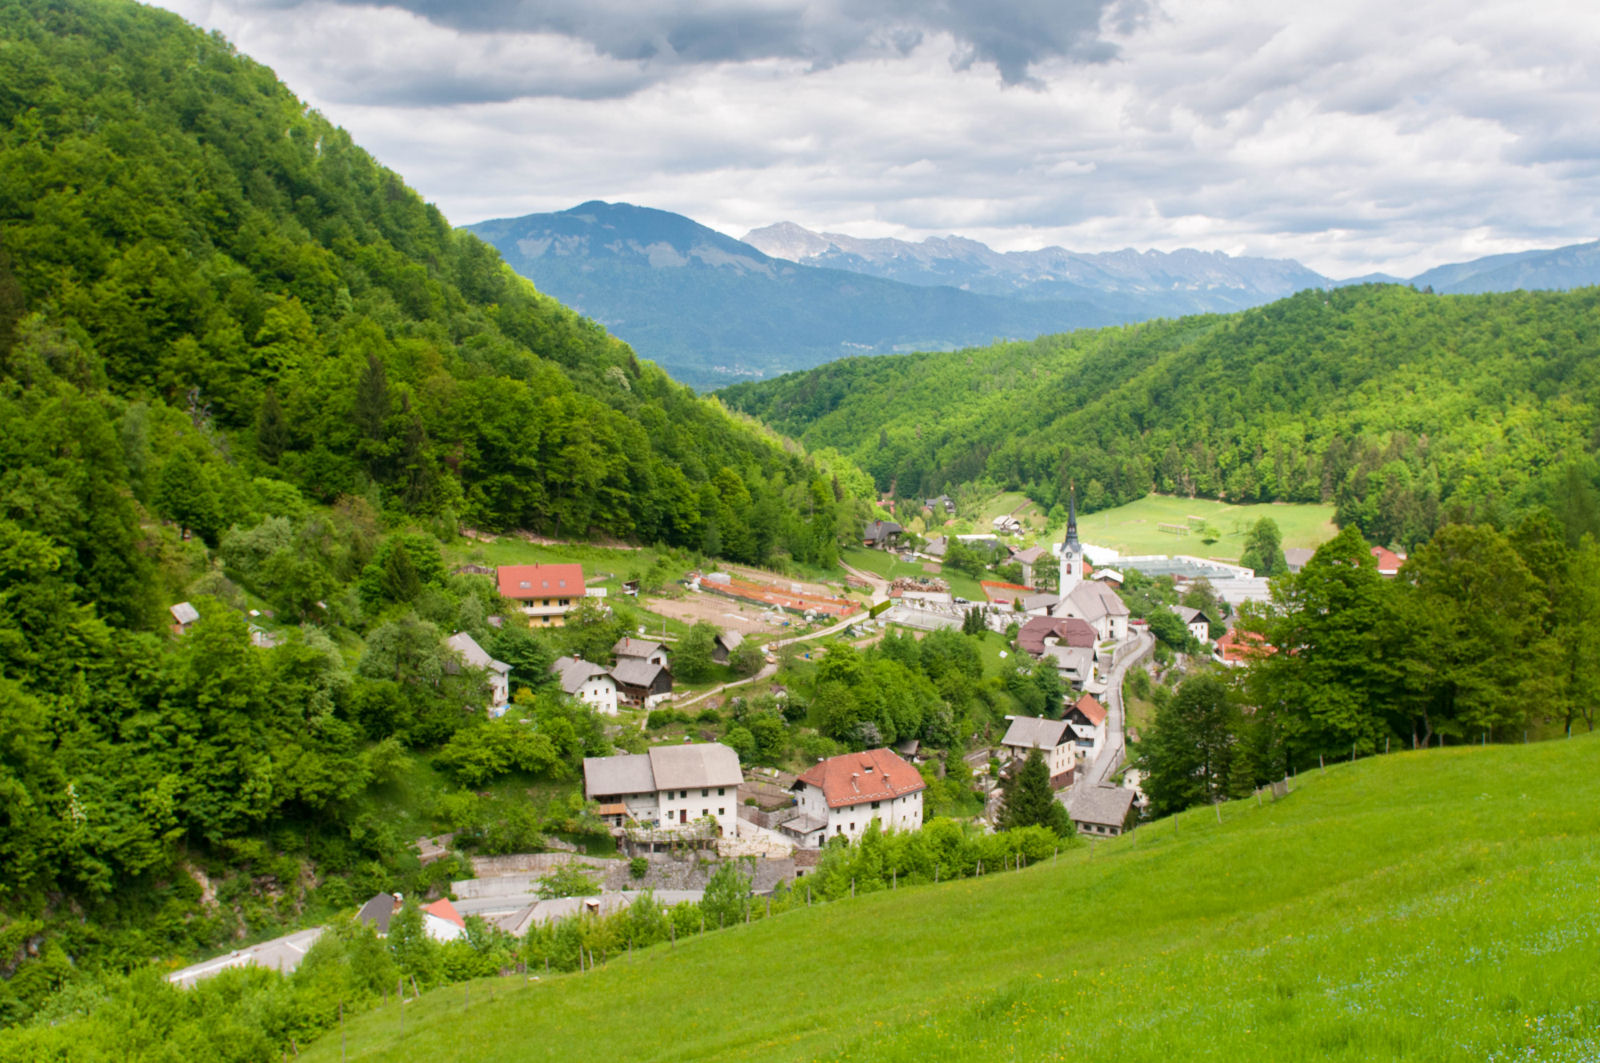 The village of Kropa, Slovenia